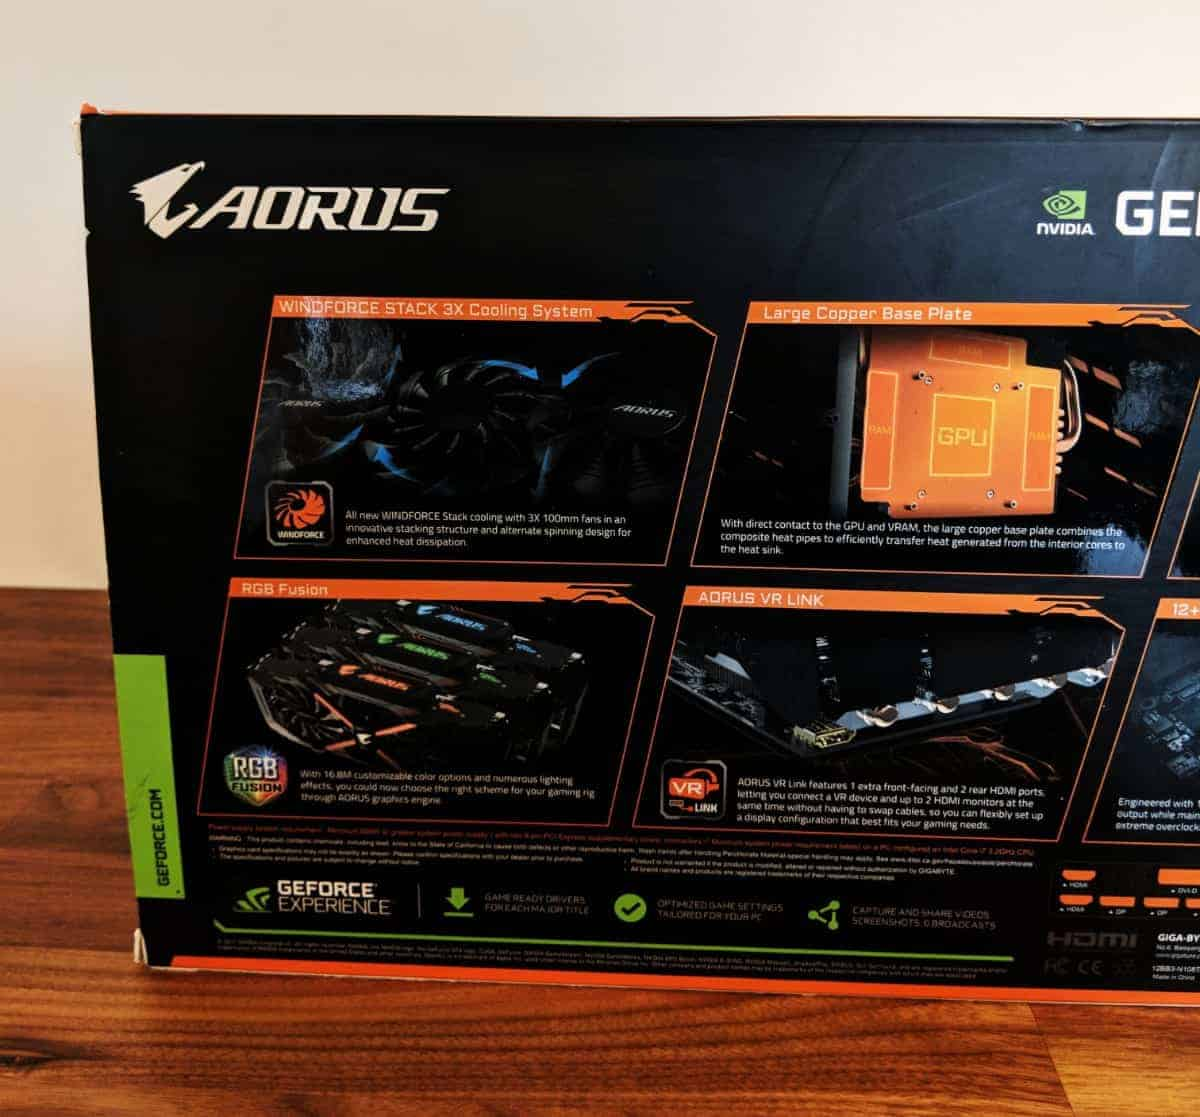 gtx1080ti-Photos-03 Gigabyte AORUS GTX 1080 Ti Review